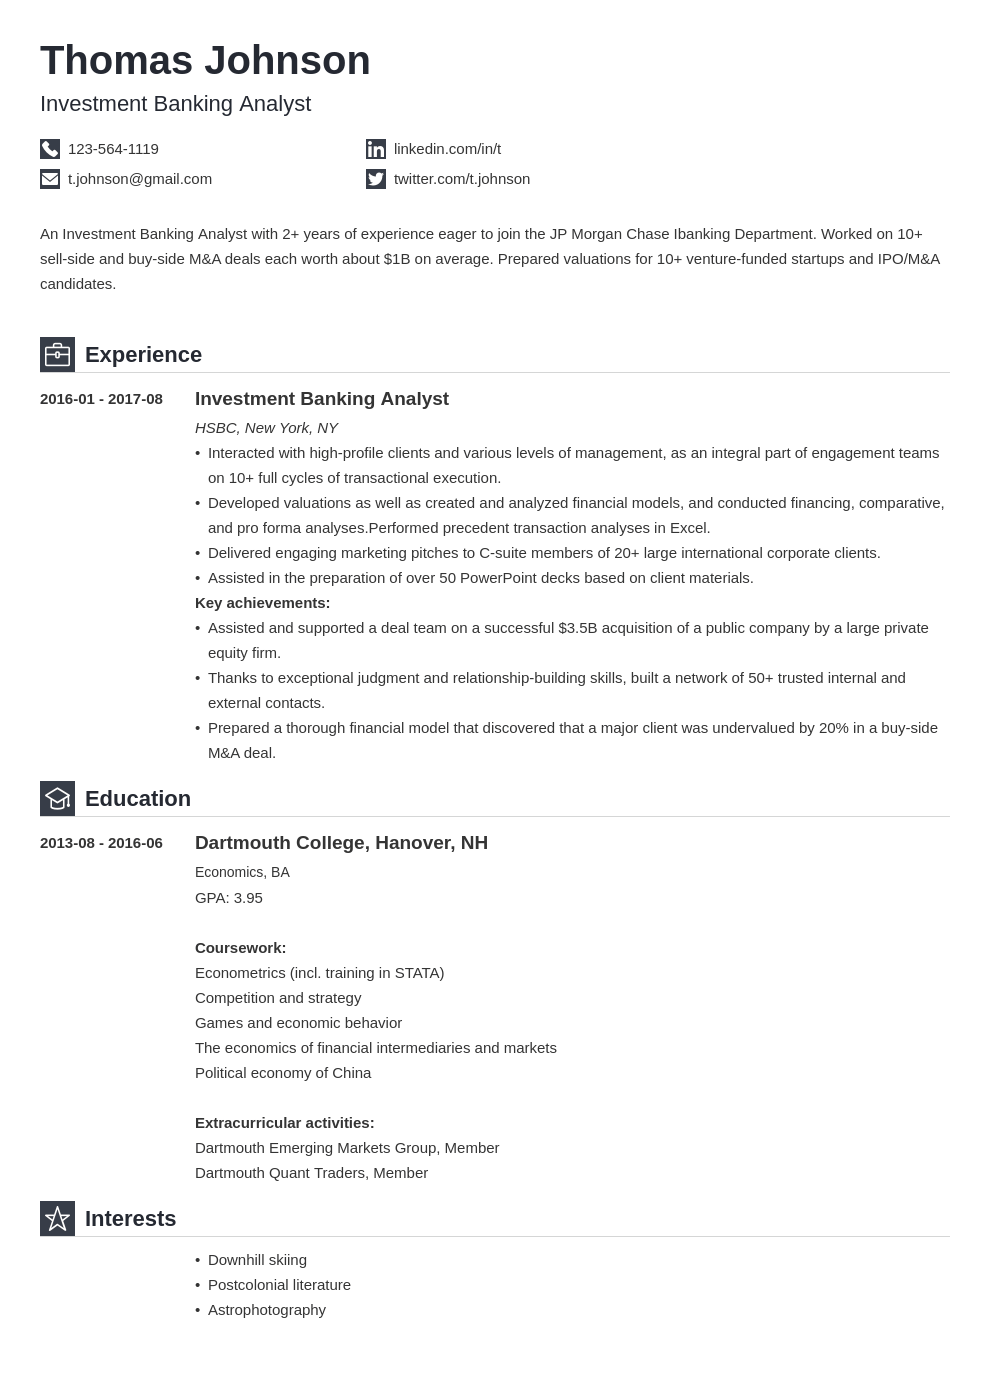 investment banking cv profile test